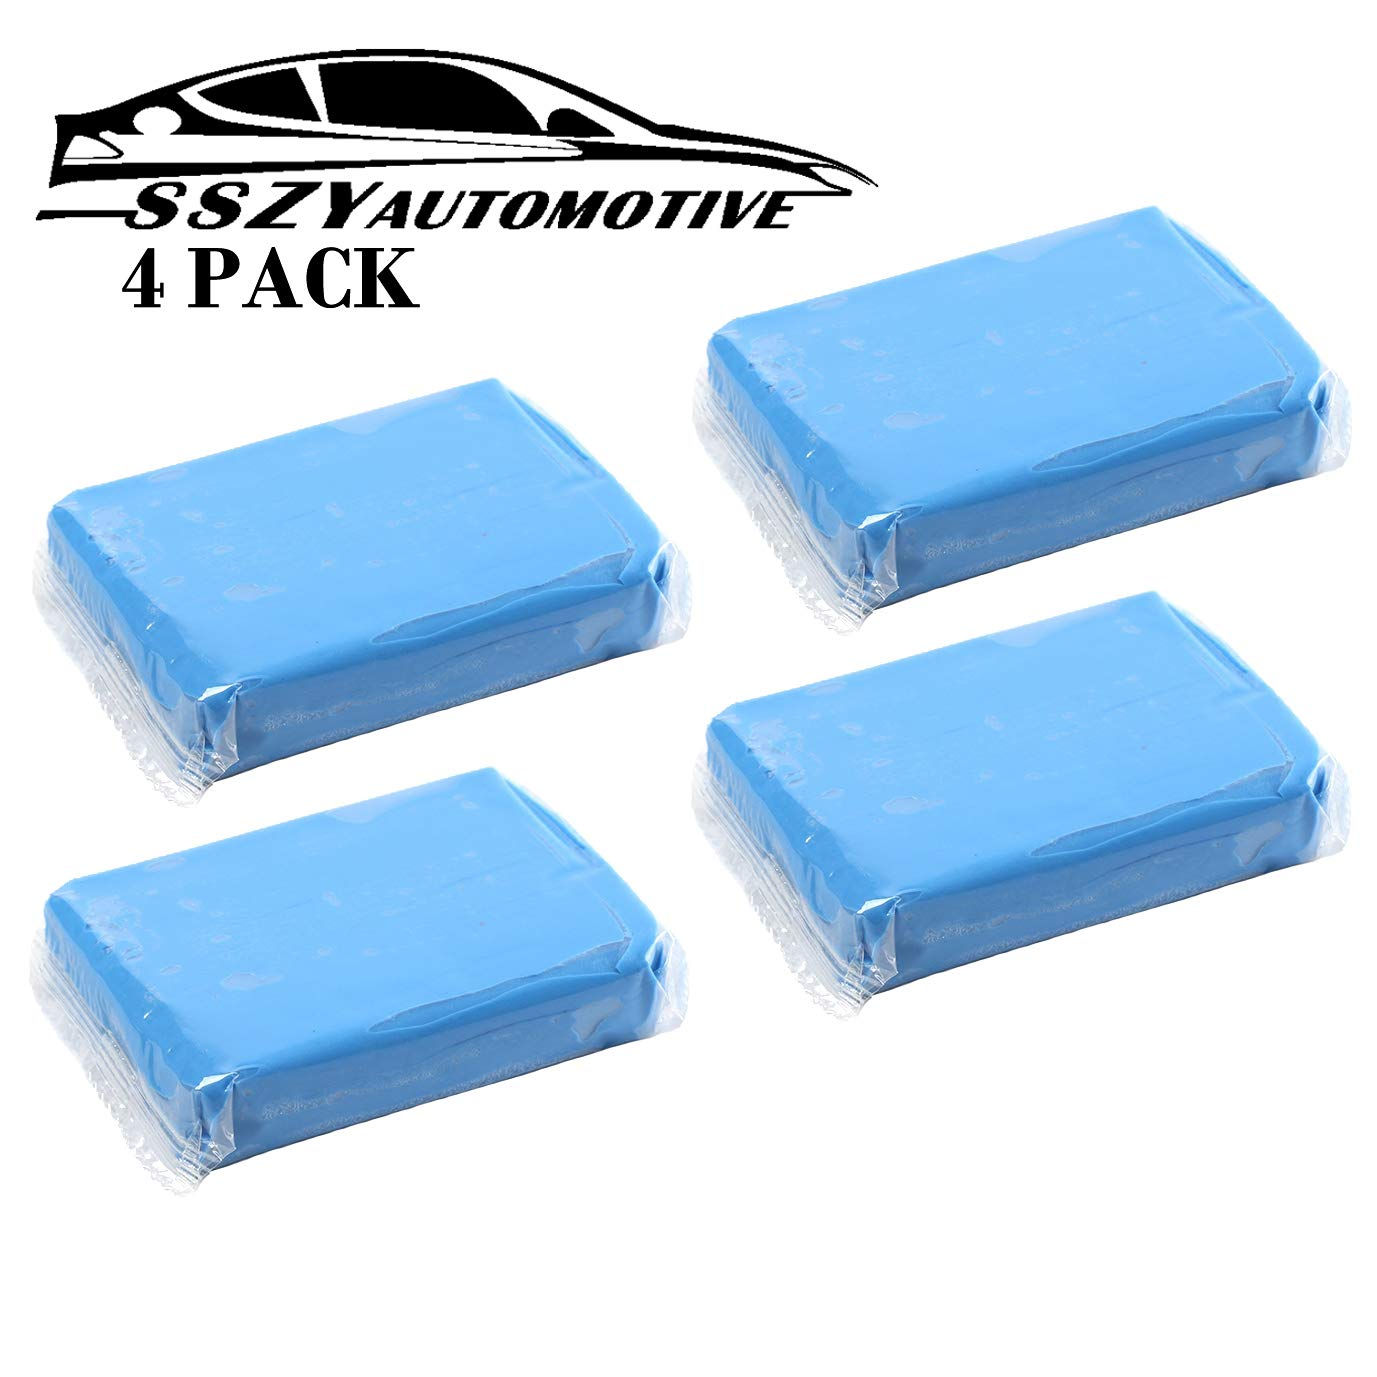 Car Clay Bar, 4 Pack 100g SSZY Powerful Type Car Auto Detailing Tools, Car Cleaning Kit, Car Cleaning Supplies Car Wash Equipment, Car Wash Magic Clay Bar Cleaner